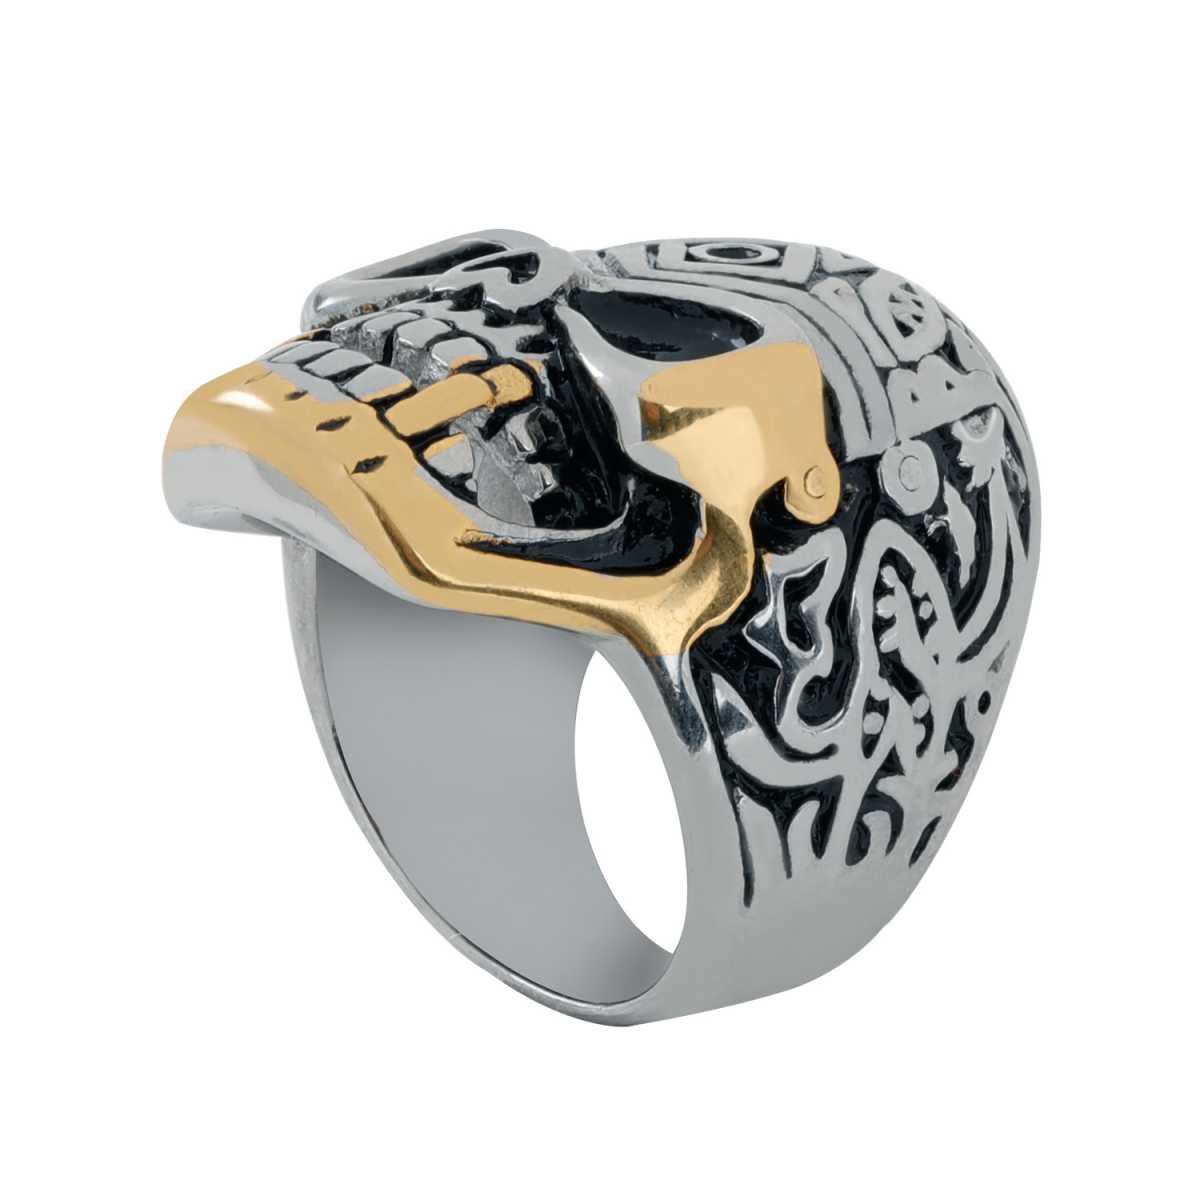 Silver Shine Stainless Steel Gothic Skull Finger Ring for Boys and Men